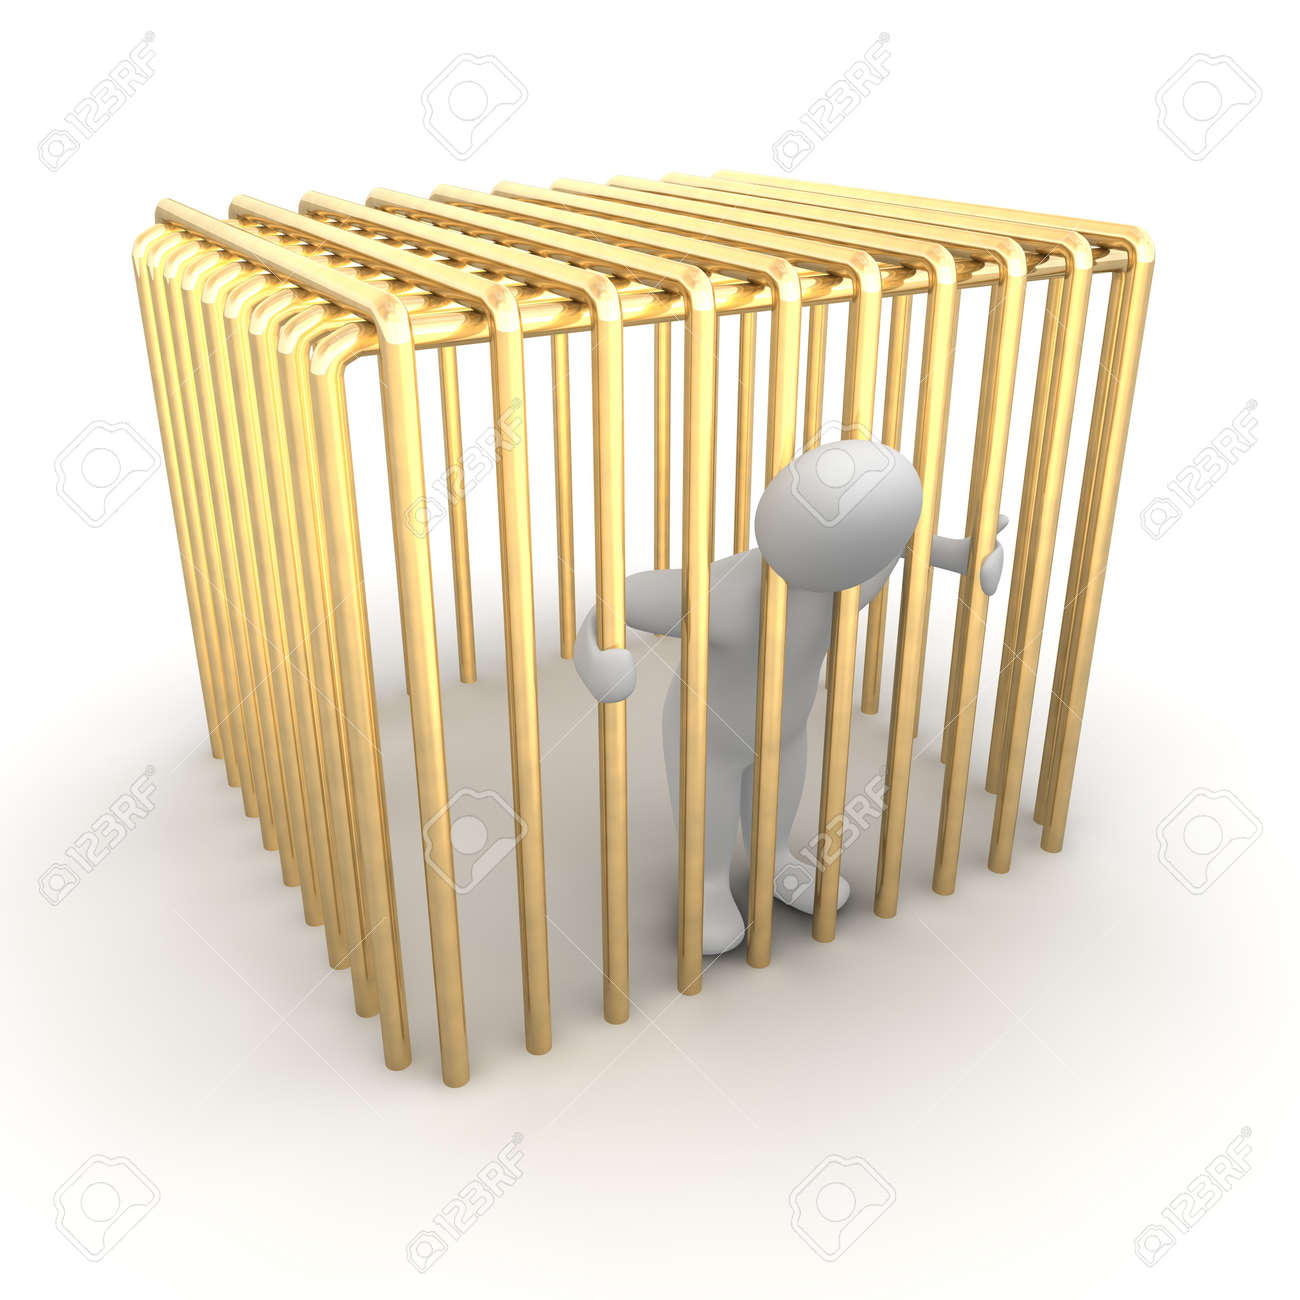 Man jailed in golden cage. 3d rendered illustration. Stock Photo - 7744842